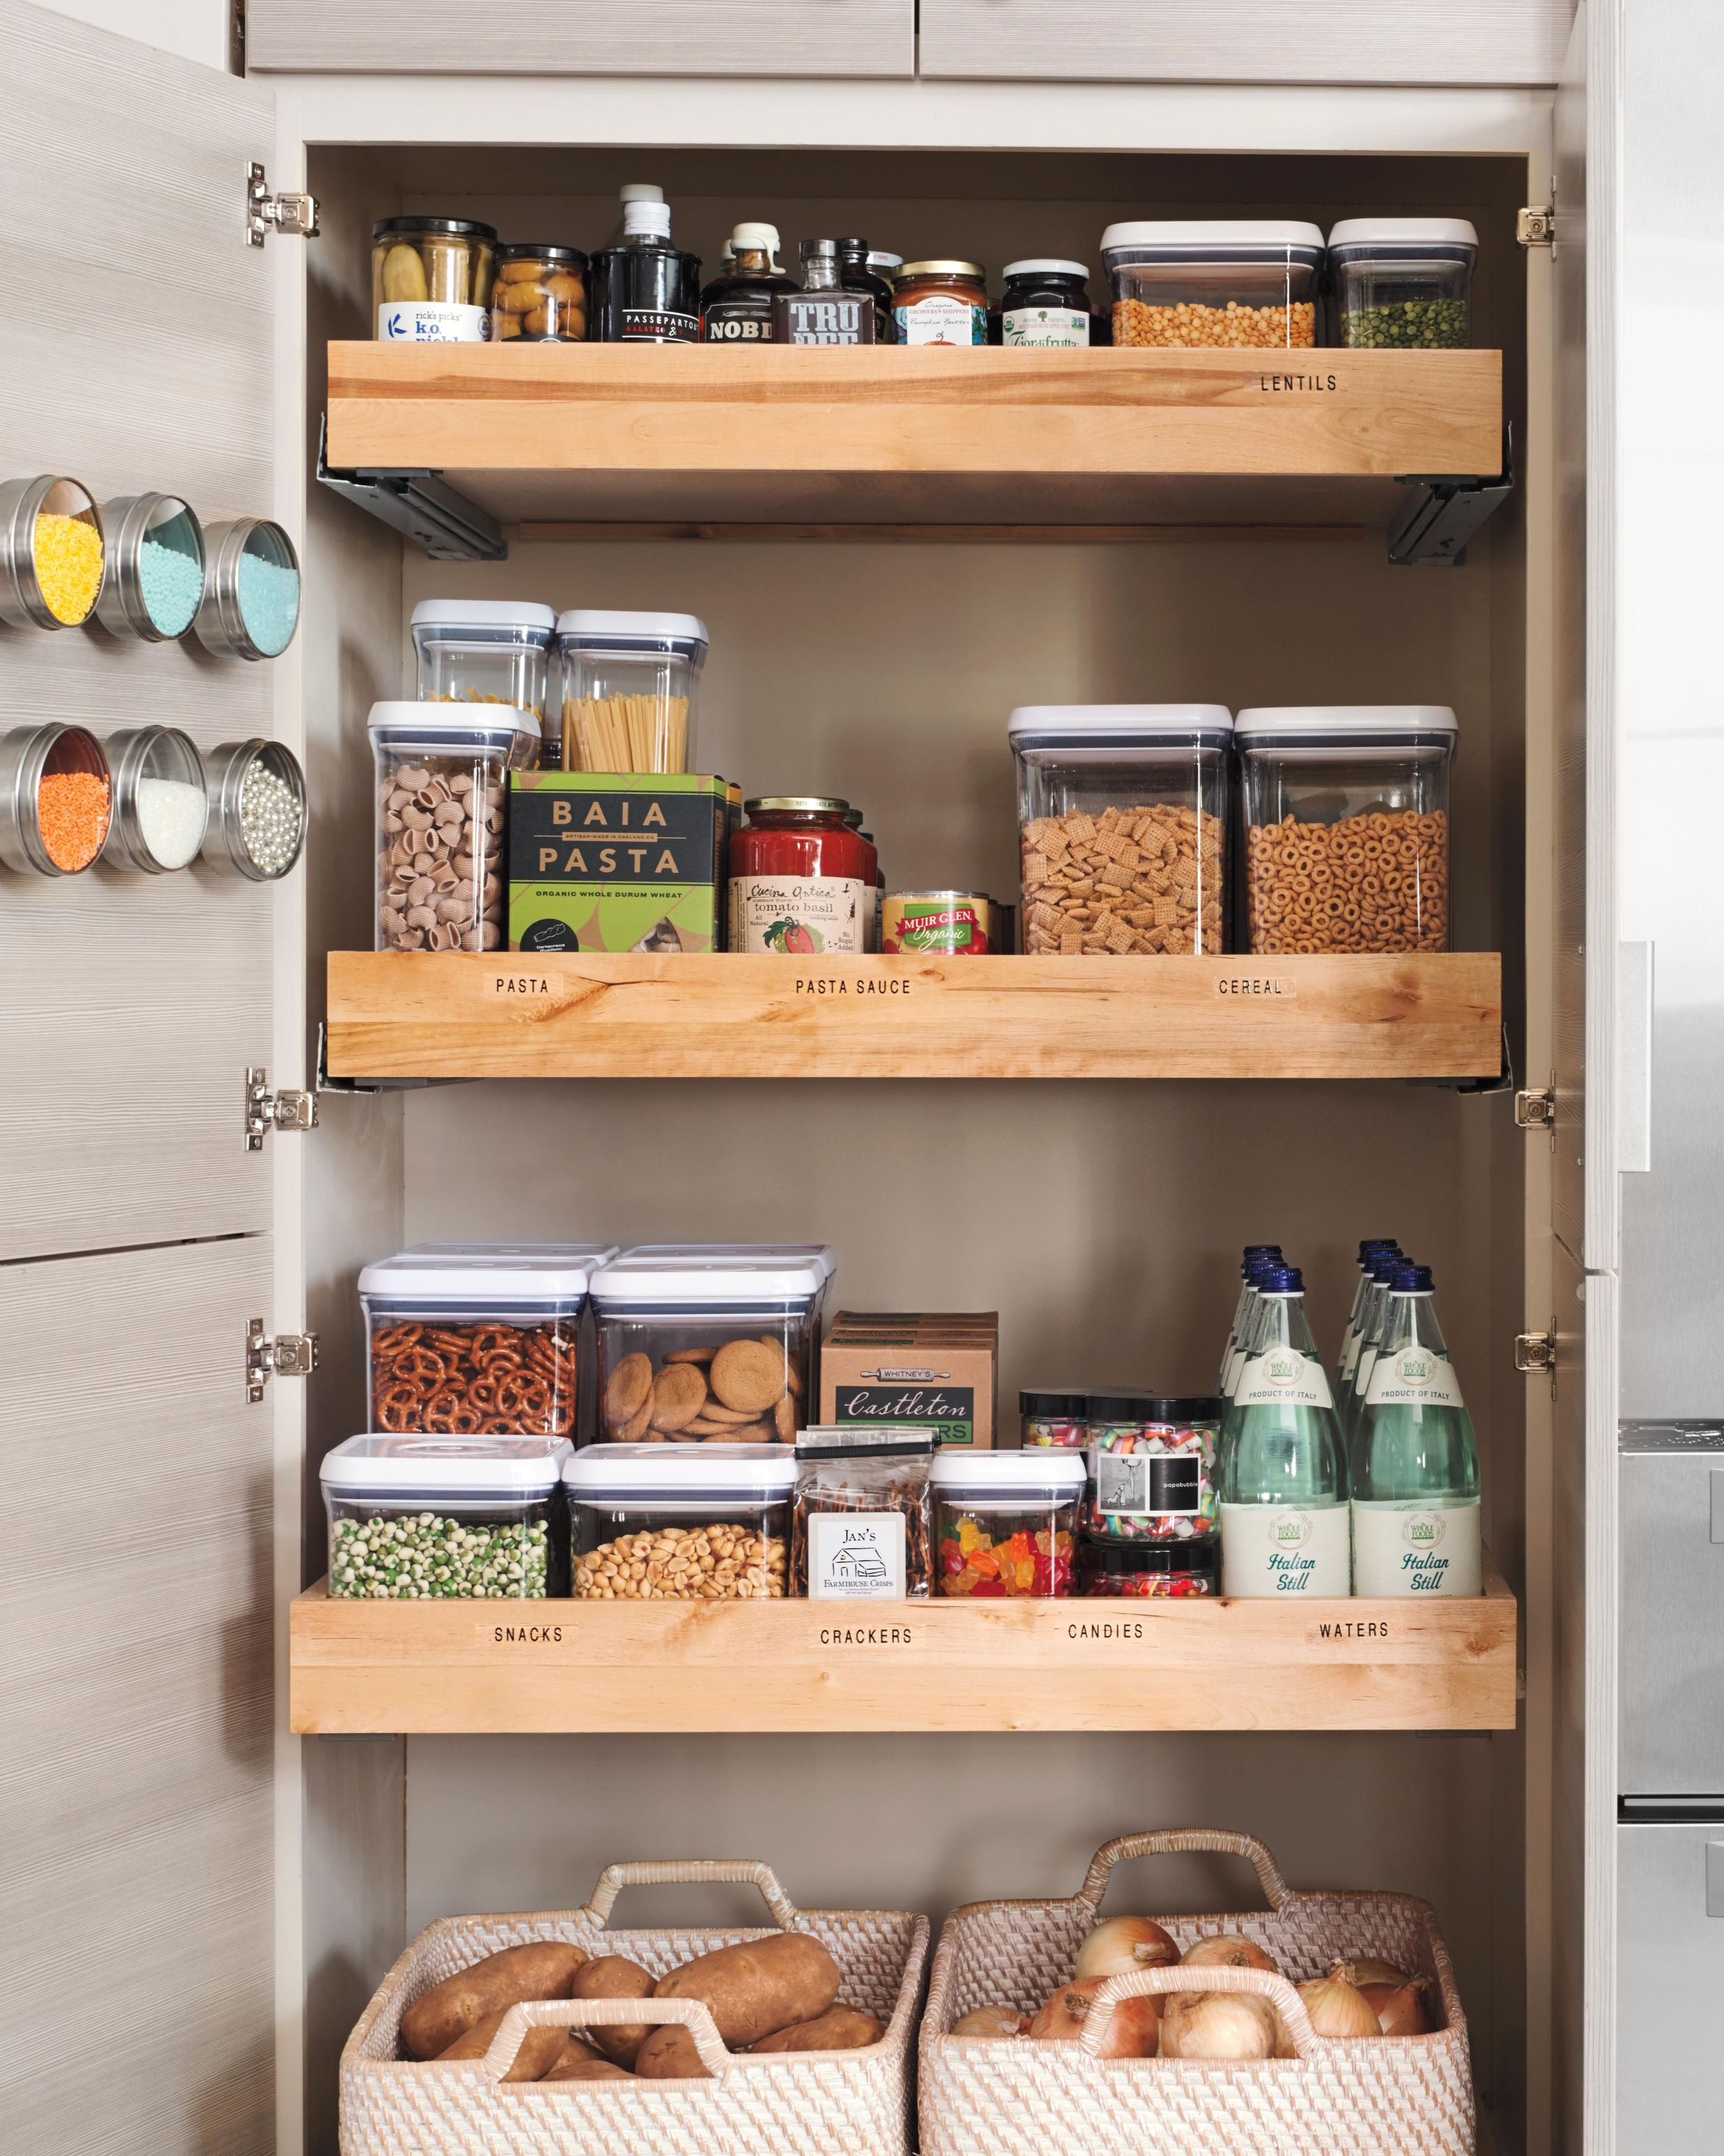 Kitchen Storage Ideas For Busy Parents In 2020 Small Kitchen Storage Small Kitchen Storage Solutions Kitchen Storage Solutions